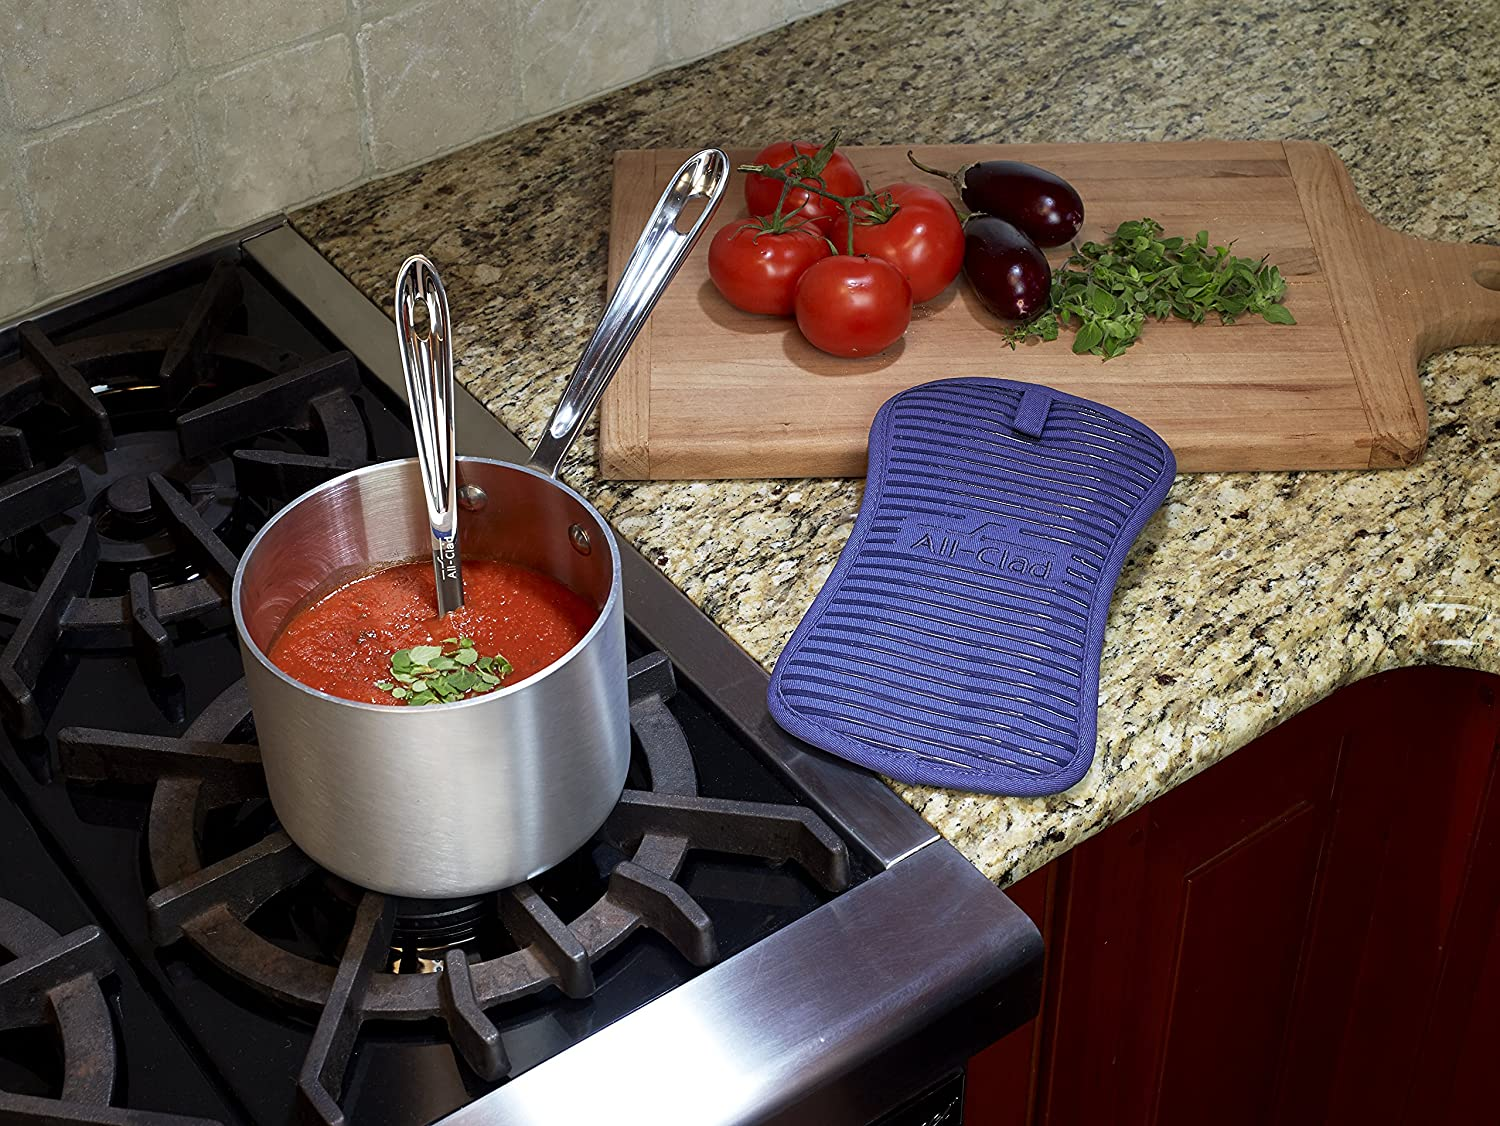 6-inches by 10-inches All-Clad Textiles Deluxe Heat and Stain Resistant Pot Holder Pewter Grey John Ritzenthaler Co us kitchen JOBP7 39270 Silicone Treated Heavyweight 100-Percent Cotton Twill Hot Pad Machine Washable